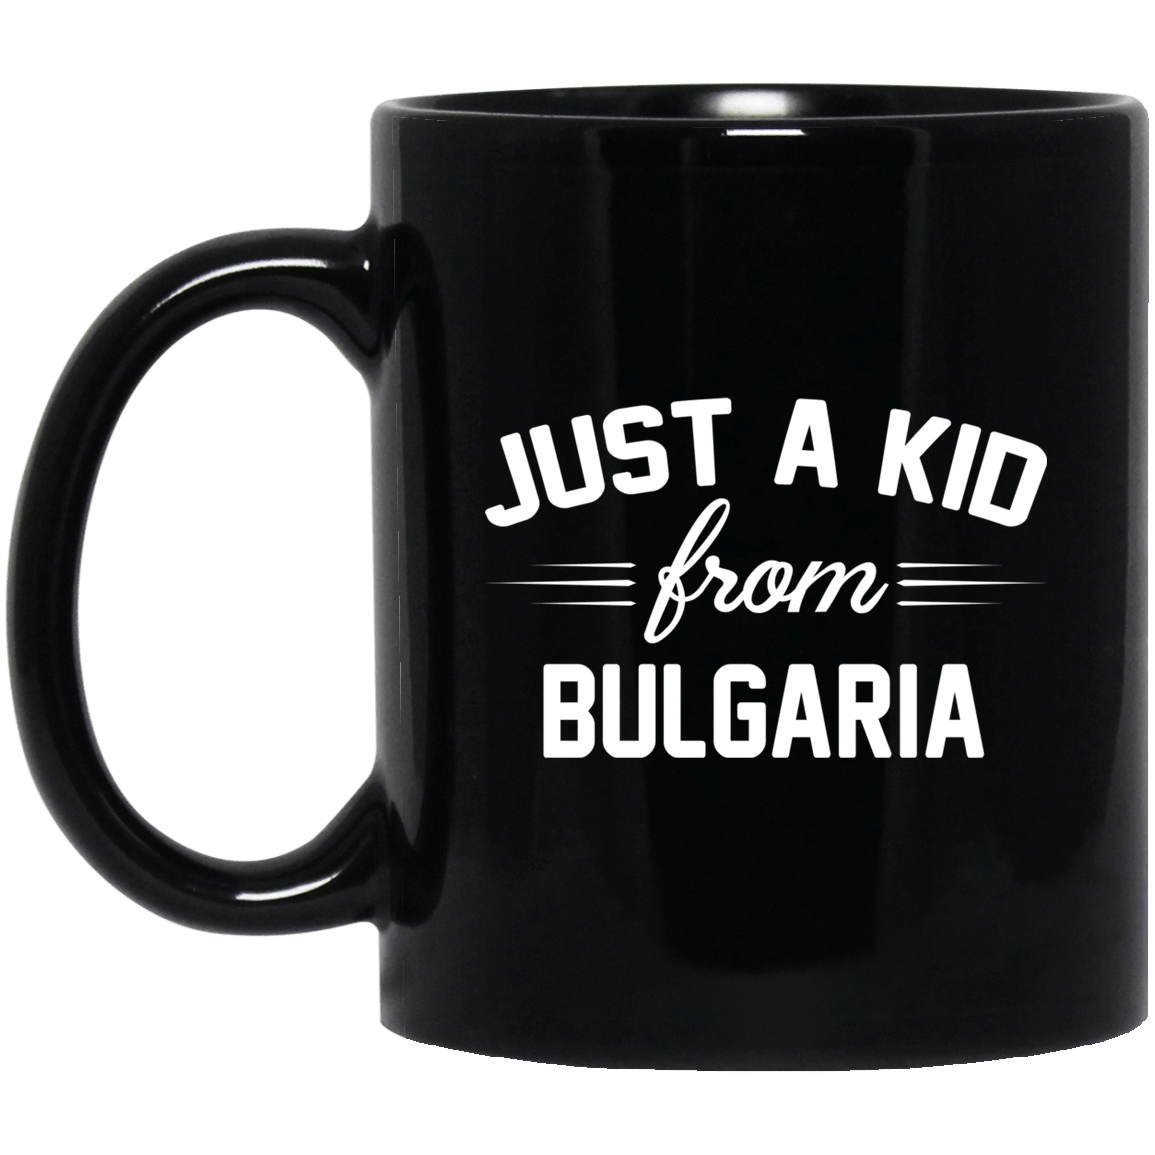 Just A Kid Store | Bulgaria Mug 1065-10181-72111293-49307 - Tee Ript